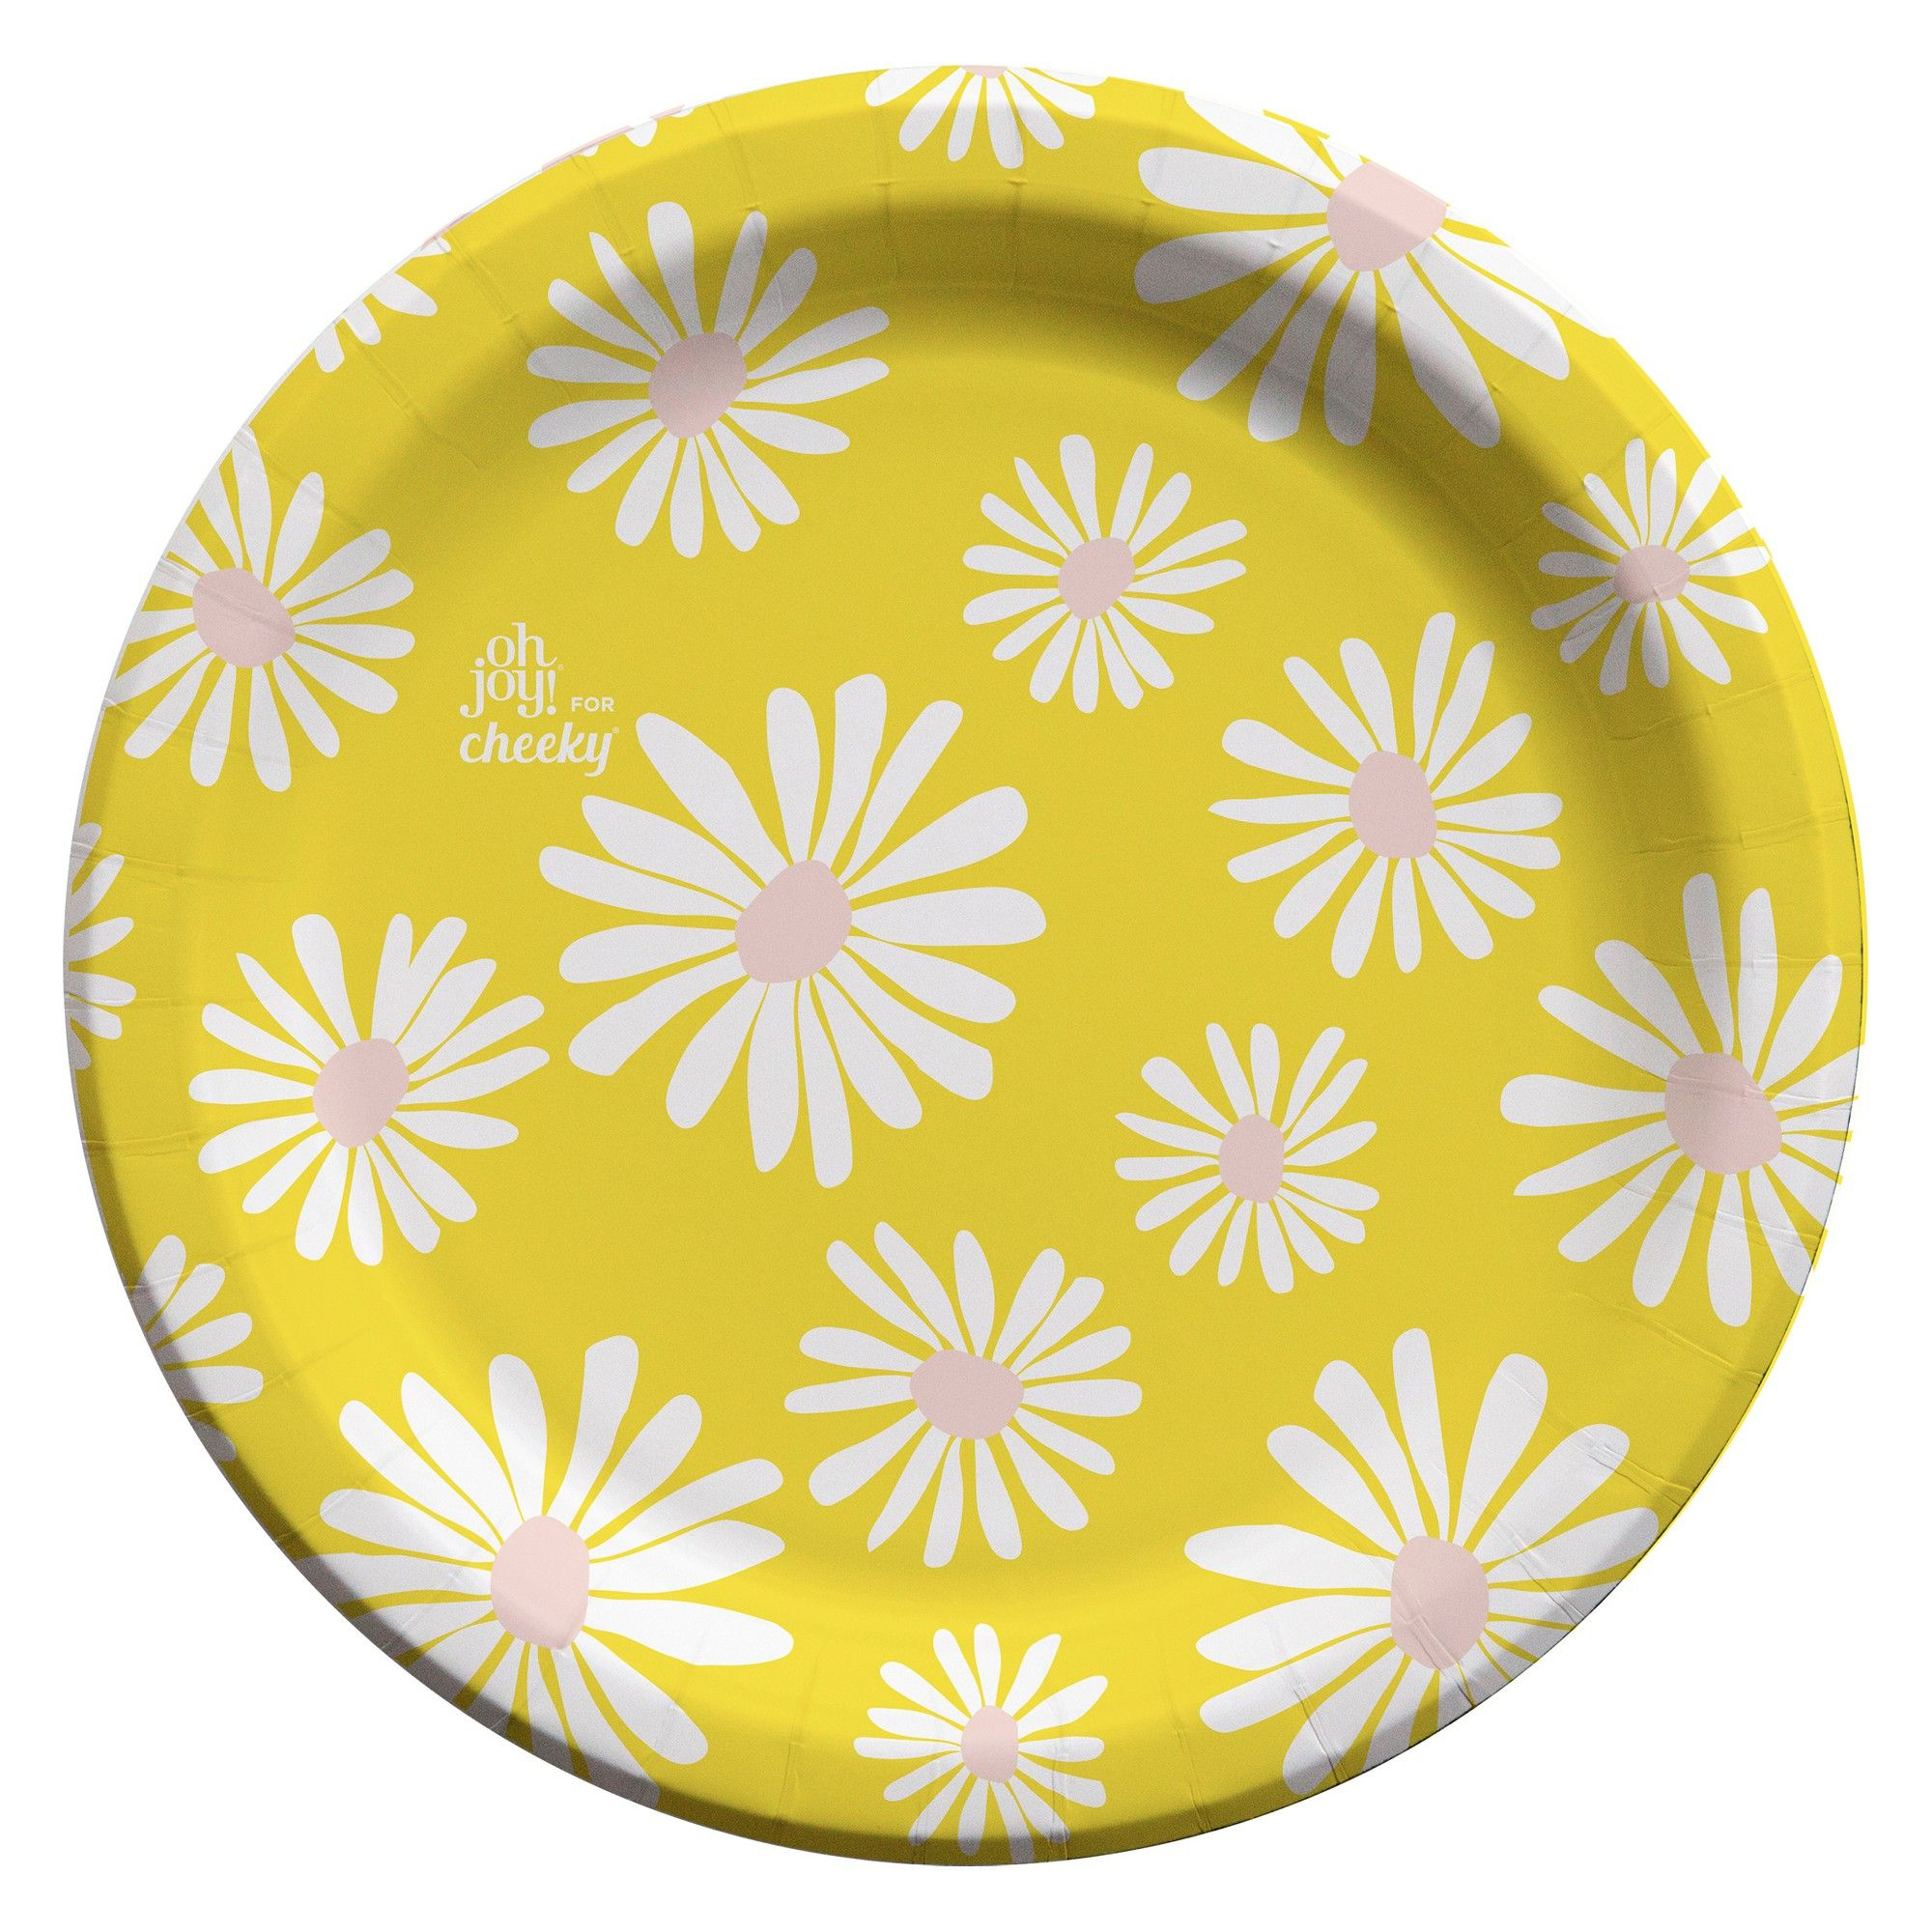 Oh Joy! for Cheeky Daisies on Yellow 7